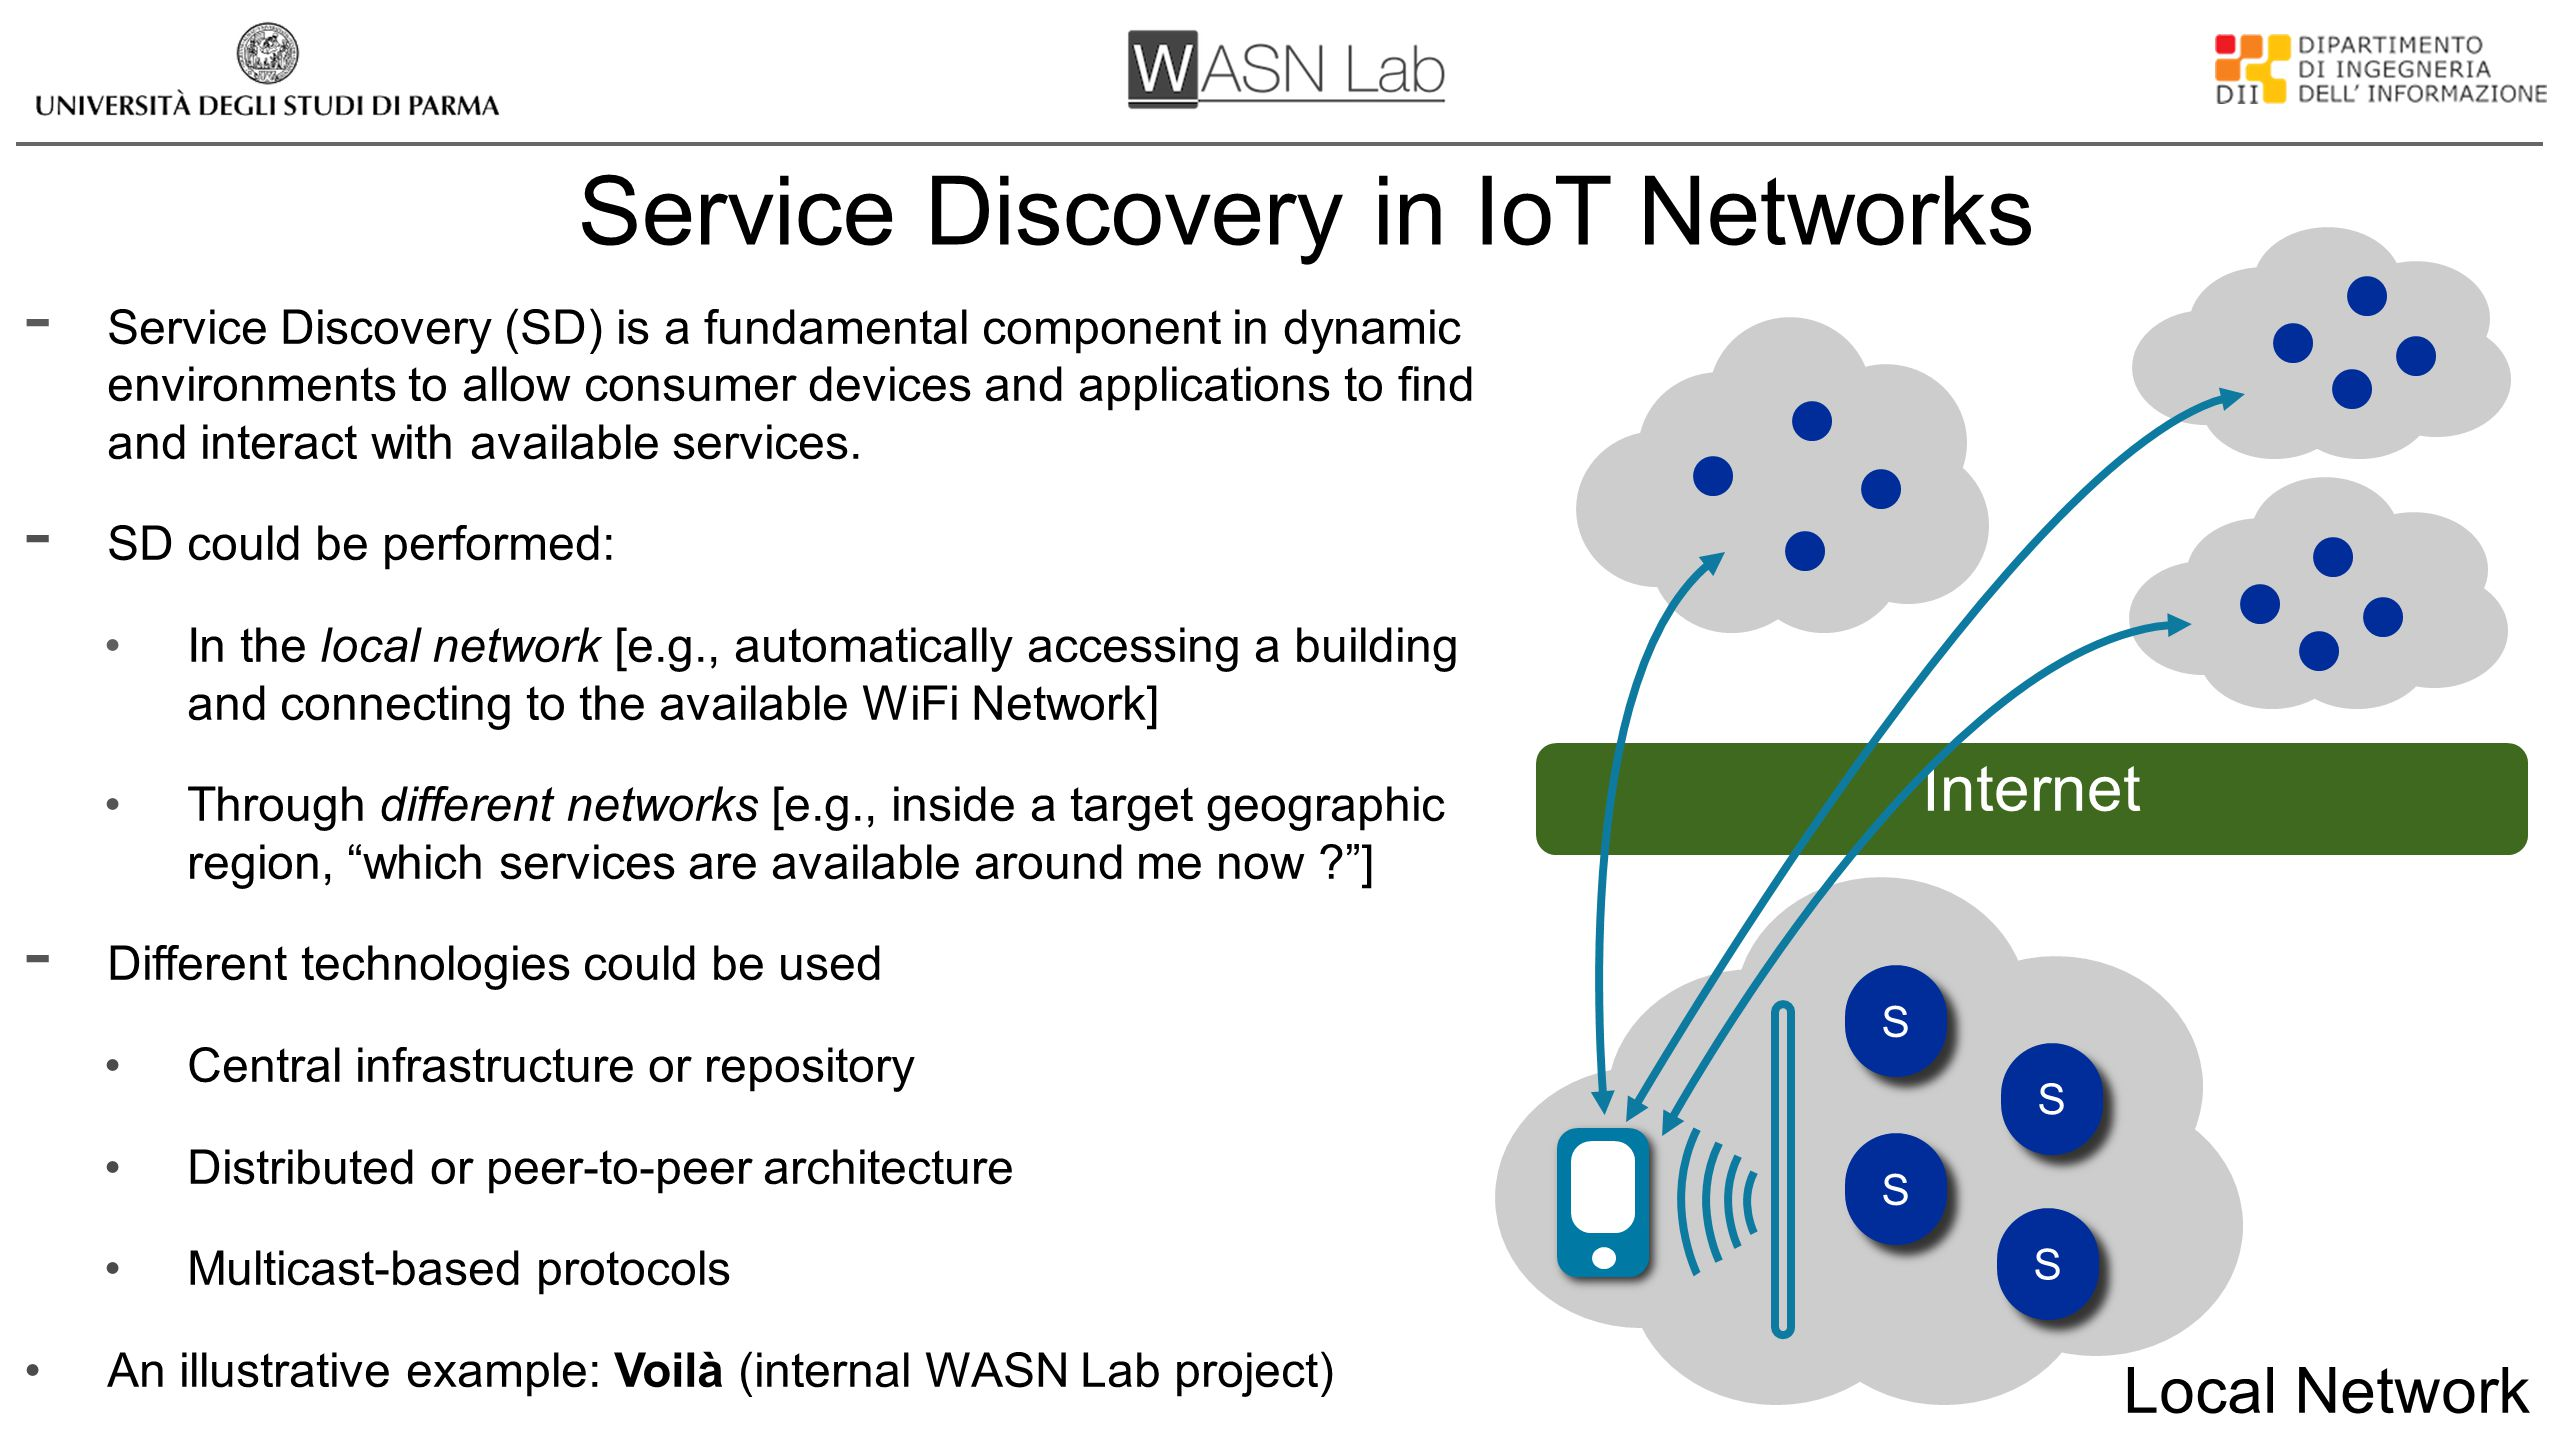 Service Discovery in IoT Networks